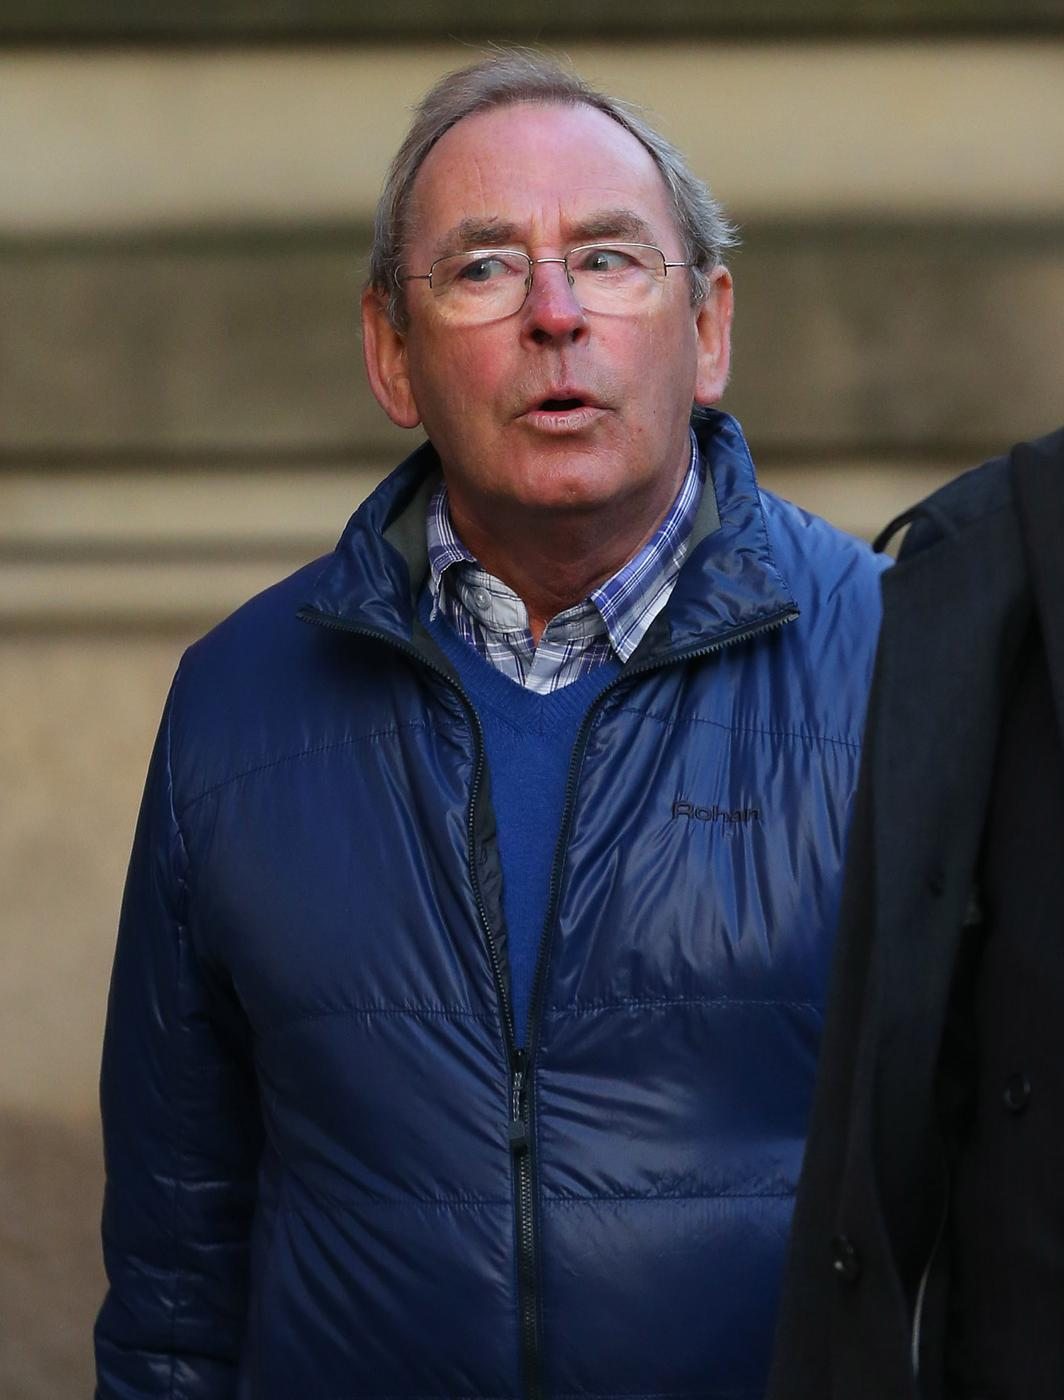 MANCHESTER, ENGLAND - JANUARY 19: Former TV weatherman Fred Talbot arrives at Manchester's Minshull Street Crown Court on January 19, 2015 in Manchester, England. Talbot is charged with nine counts of indecent assault and one further count of sexual assault. Dave Thompson/Getty Images